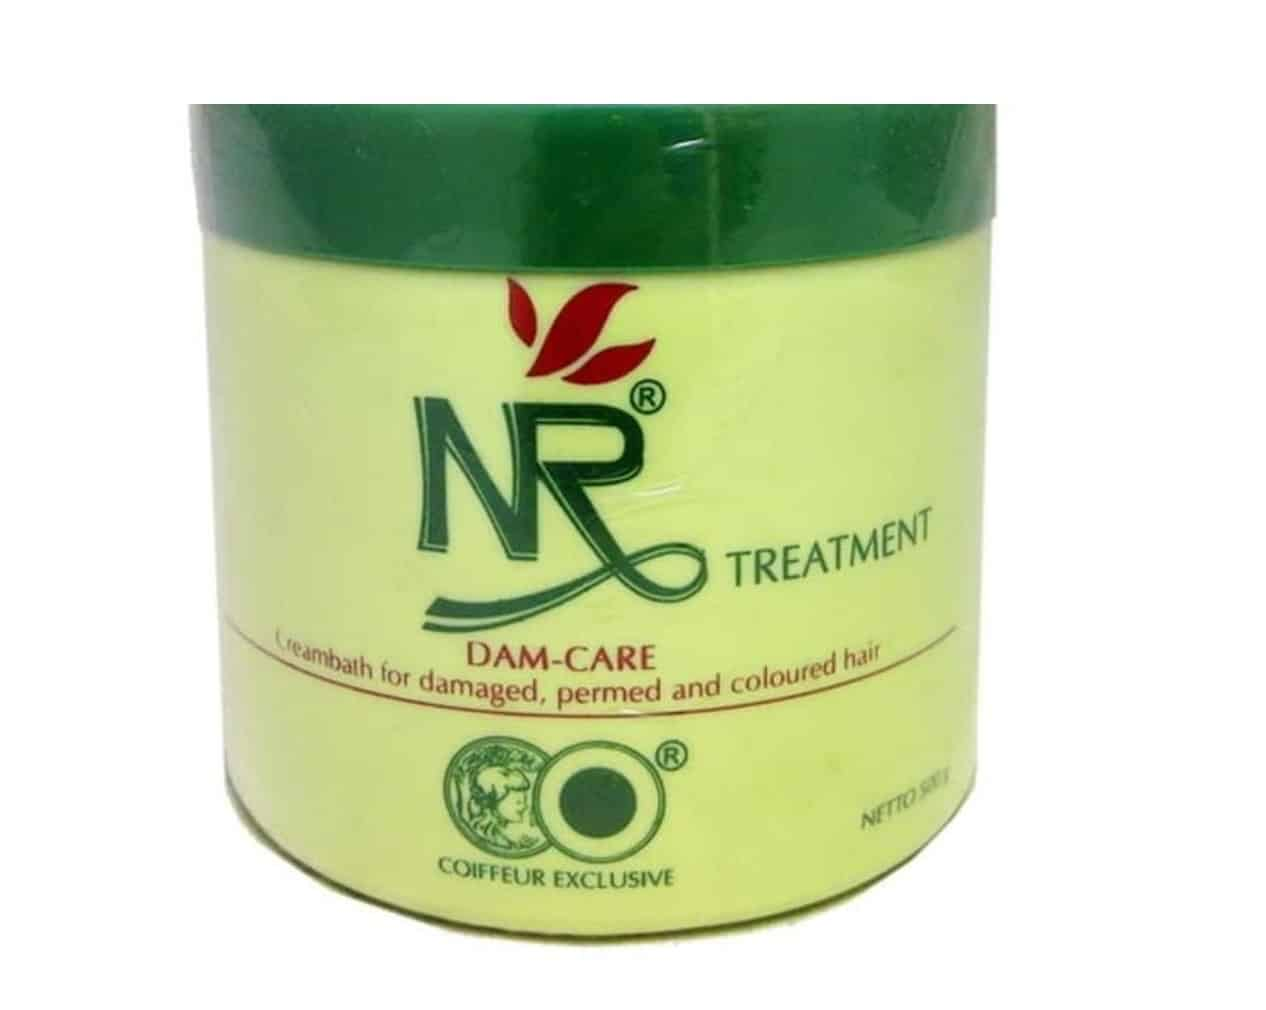 NR-treatment-khusus-creambath